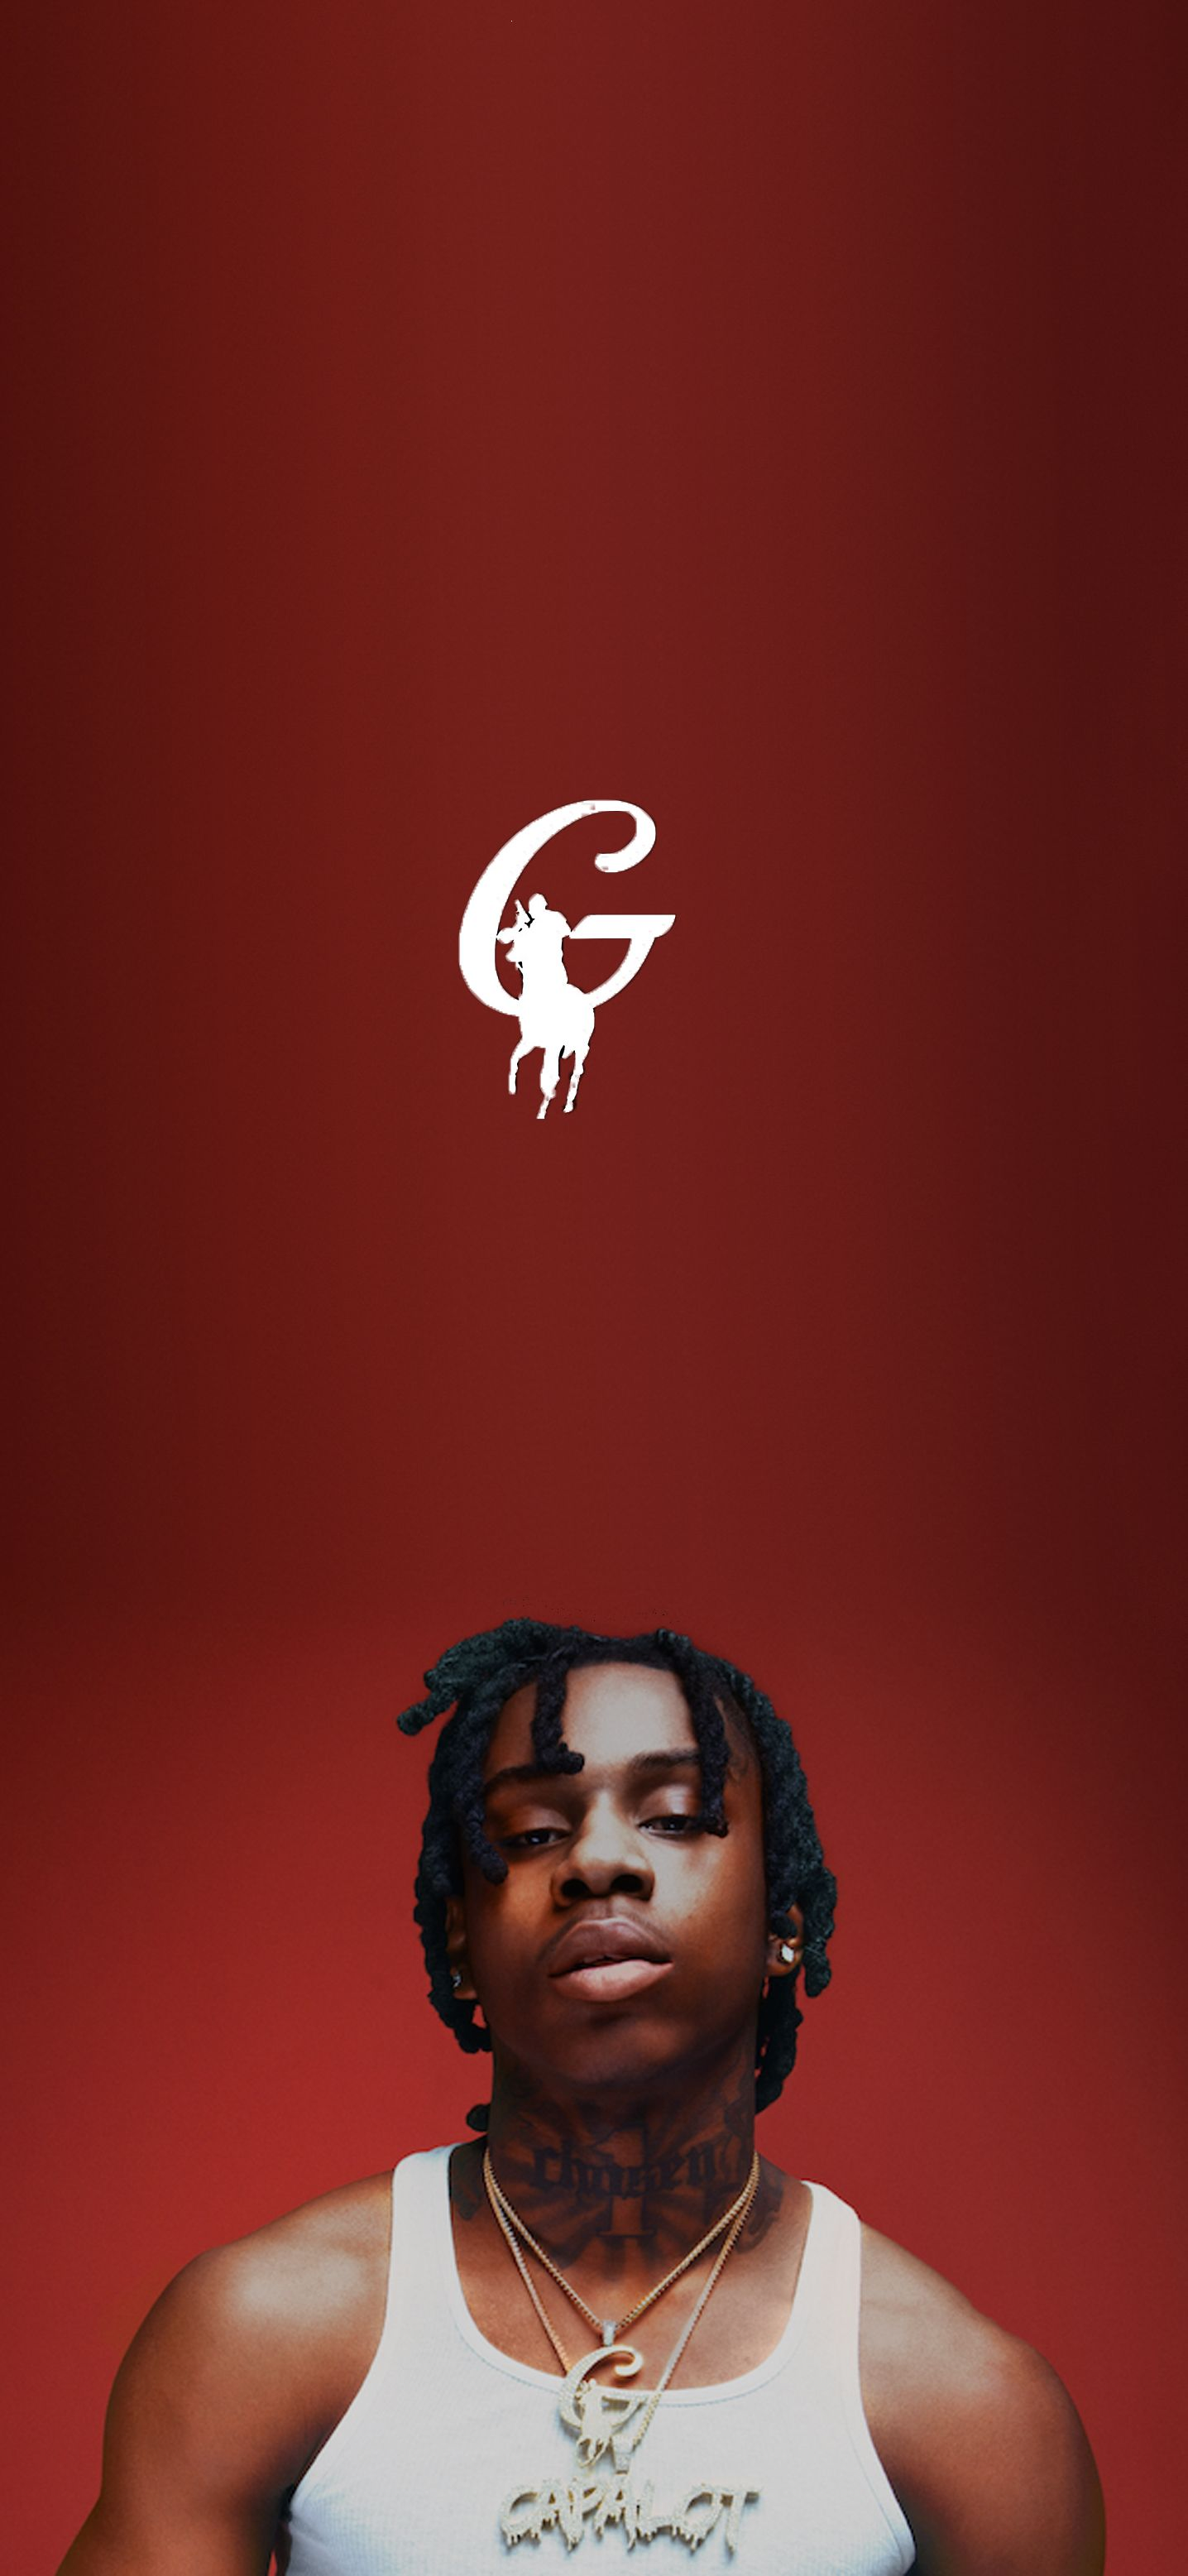 Polo G Wallpaper Rapper Wallpaper Iphone Cute Rappers Celebrity Wallpapers